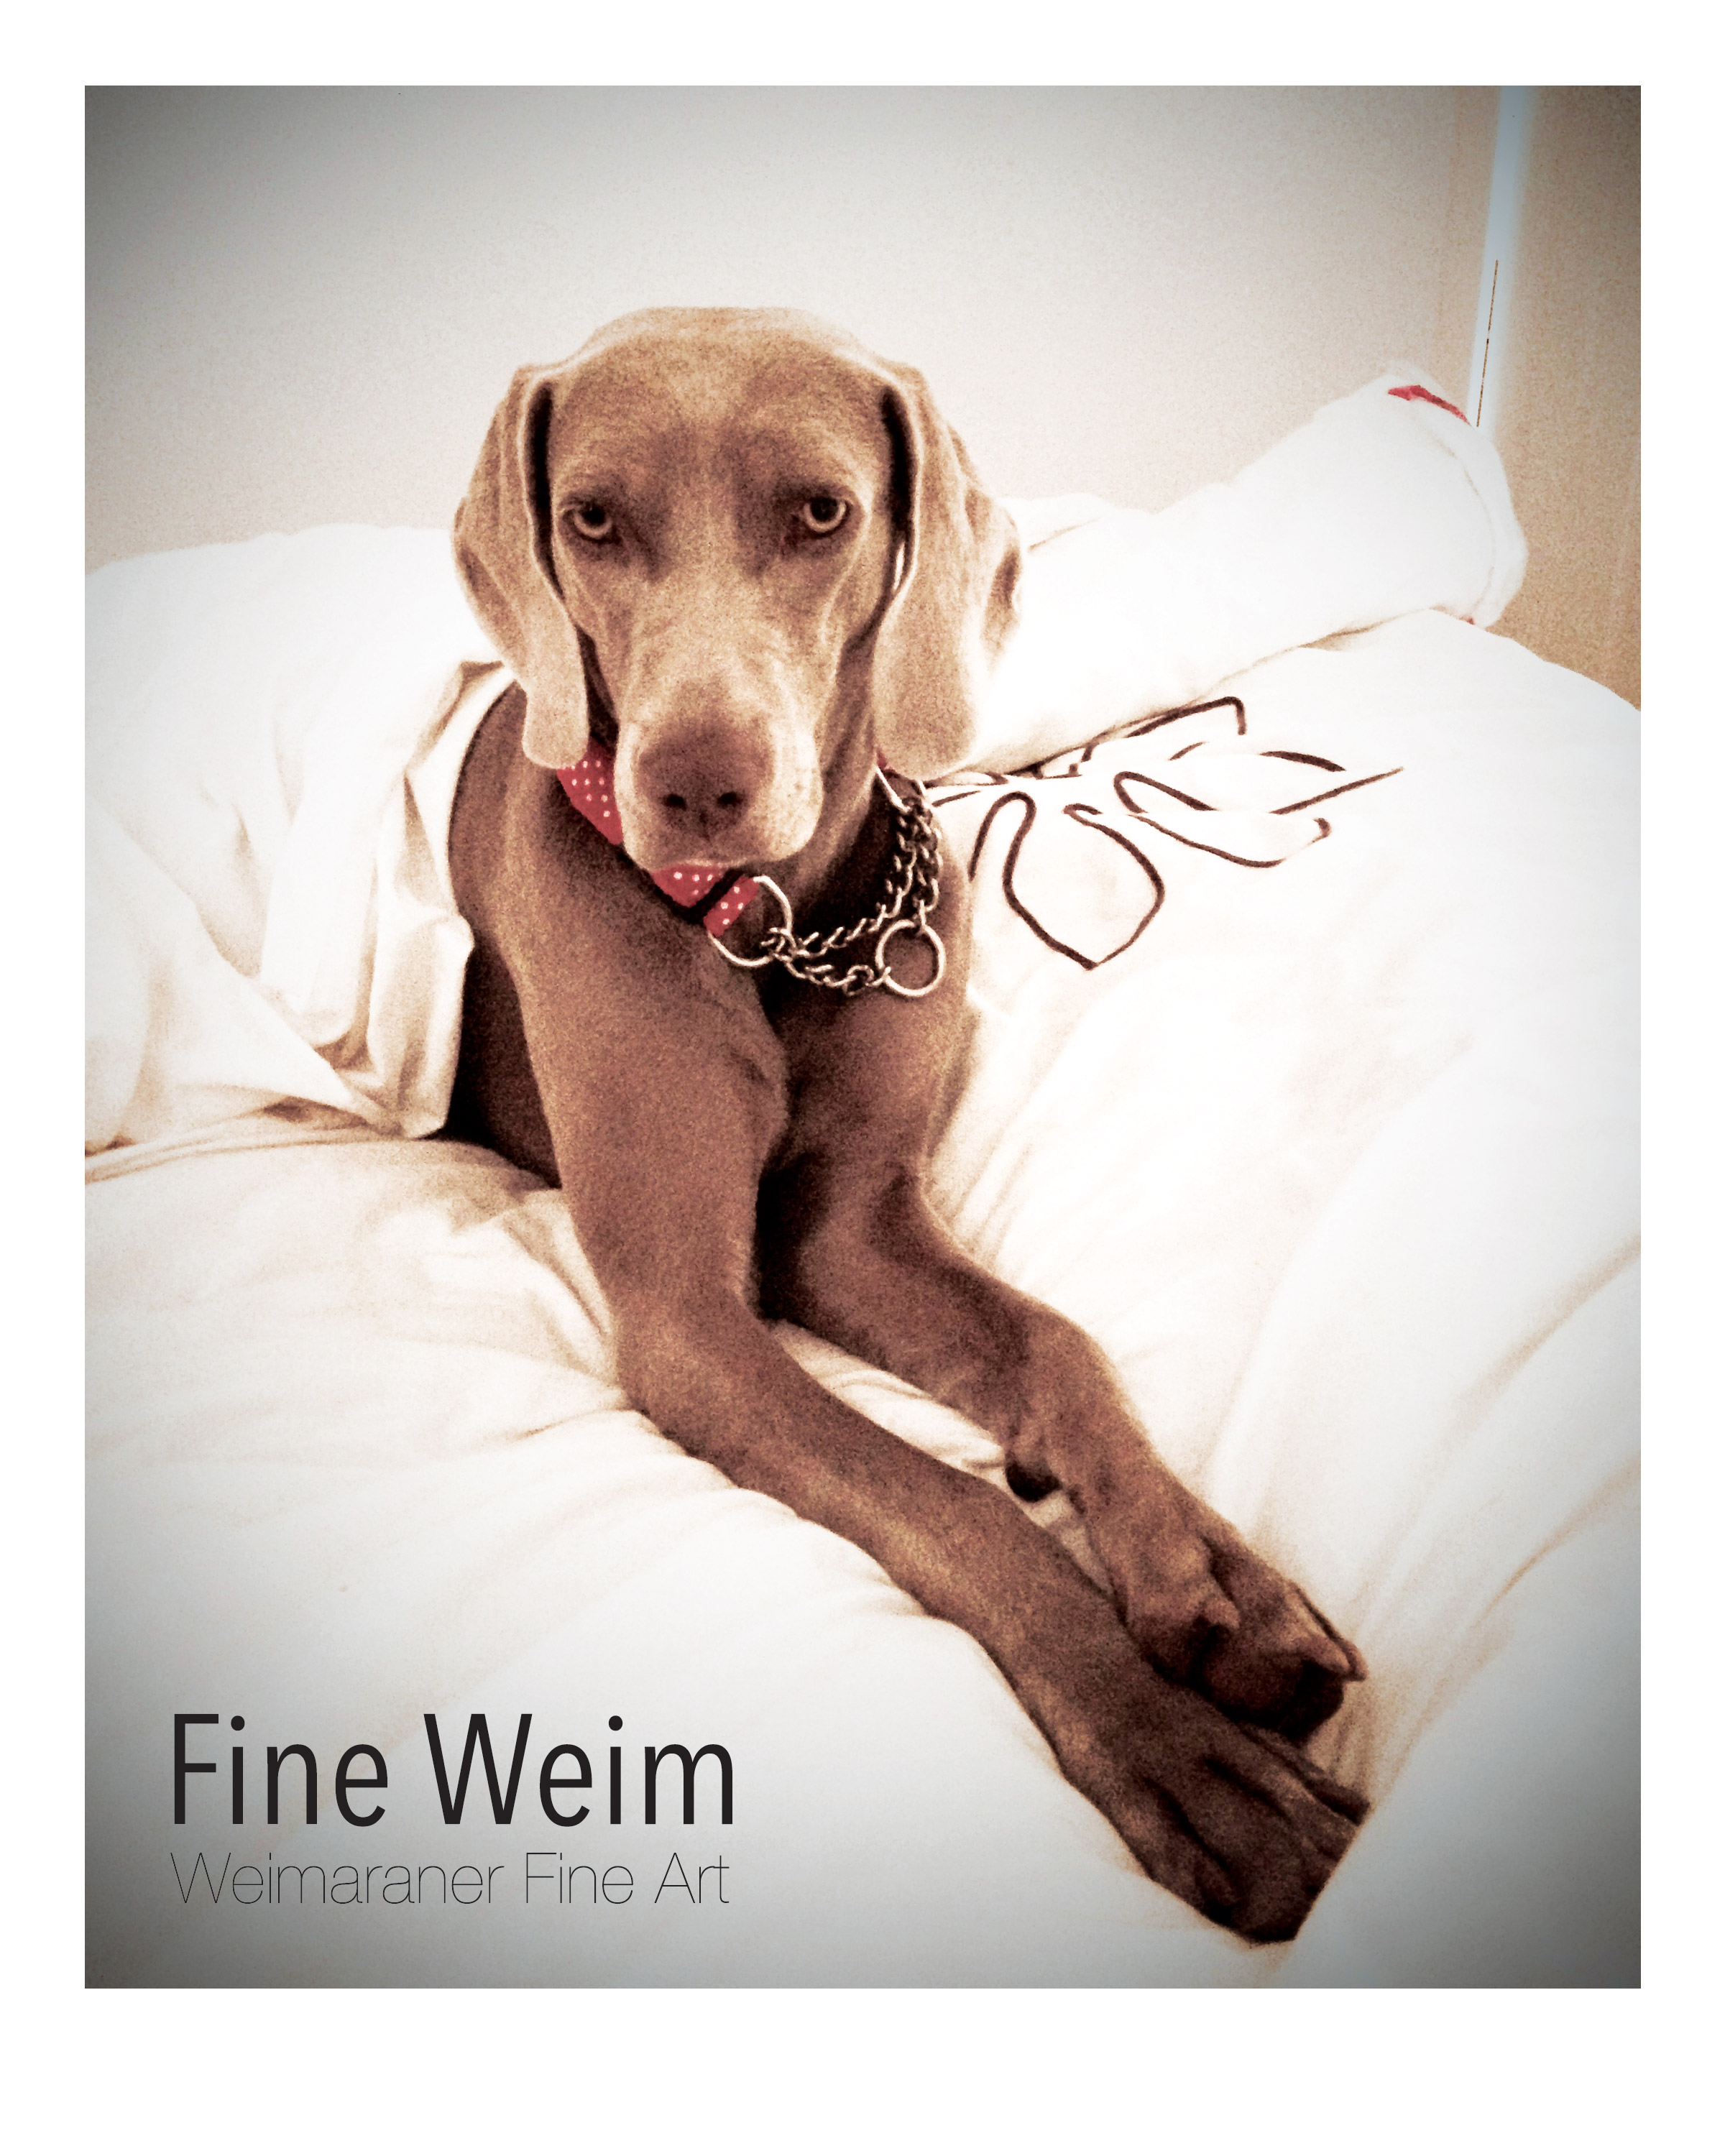 Weimaraner Fine Art Print: Some Weim time